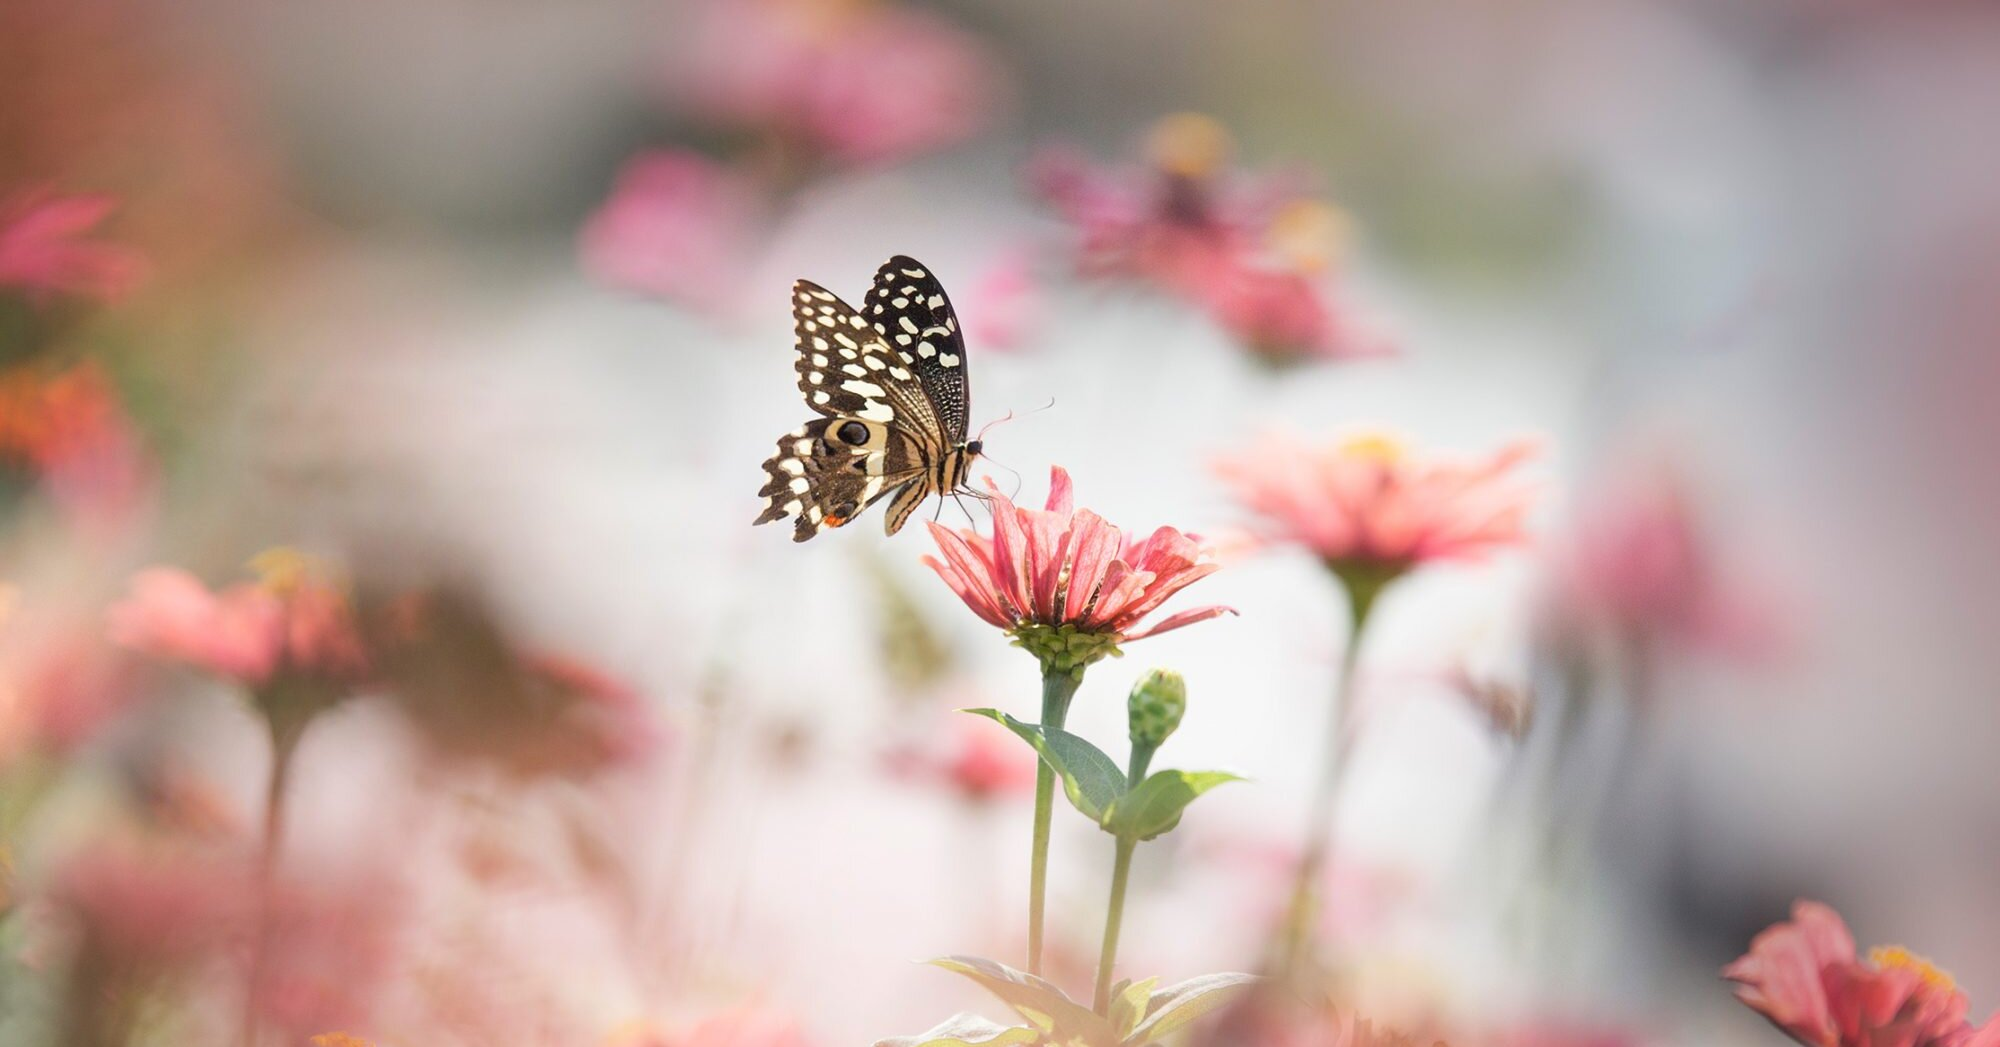 You Can Attract More Butterflies to Your Yard by Planting These Flowers